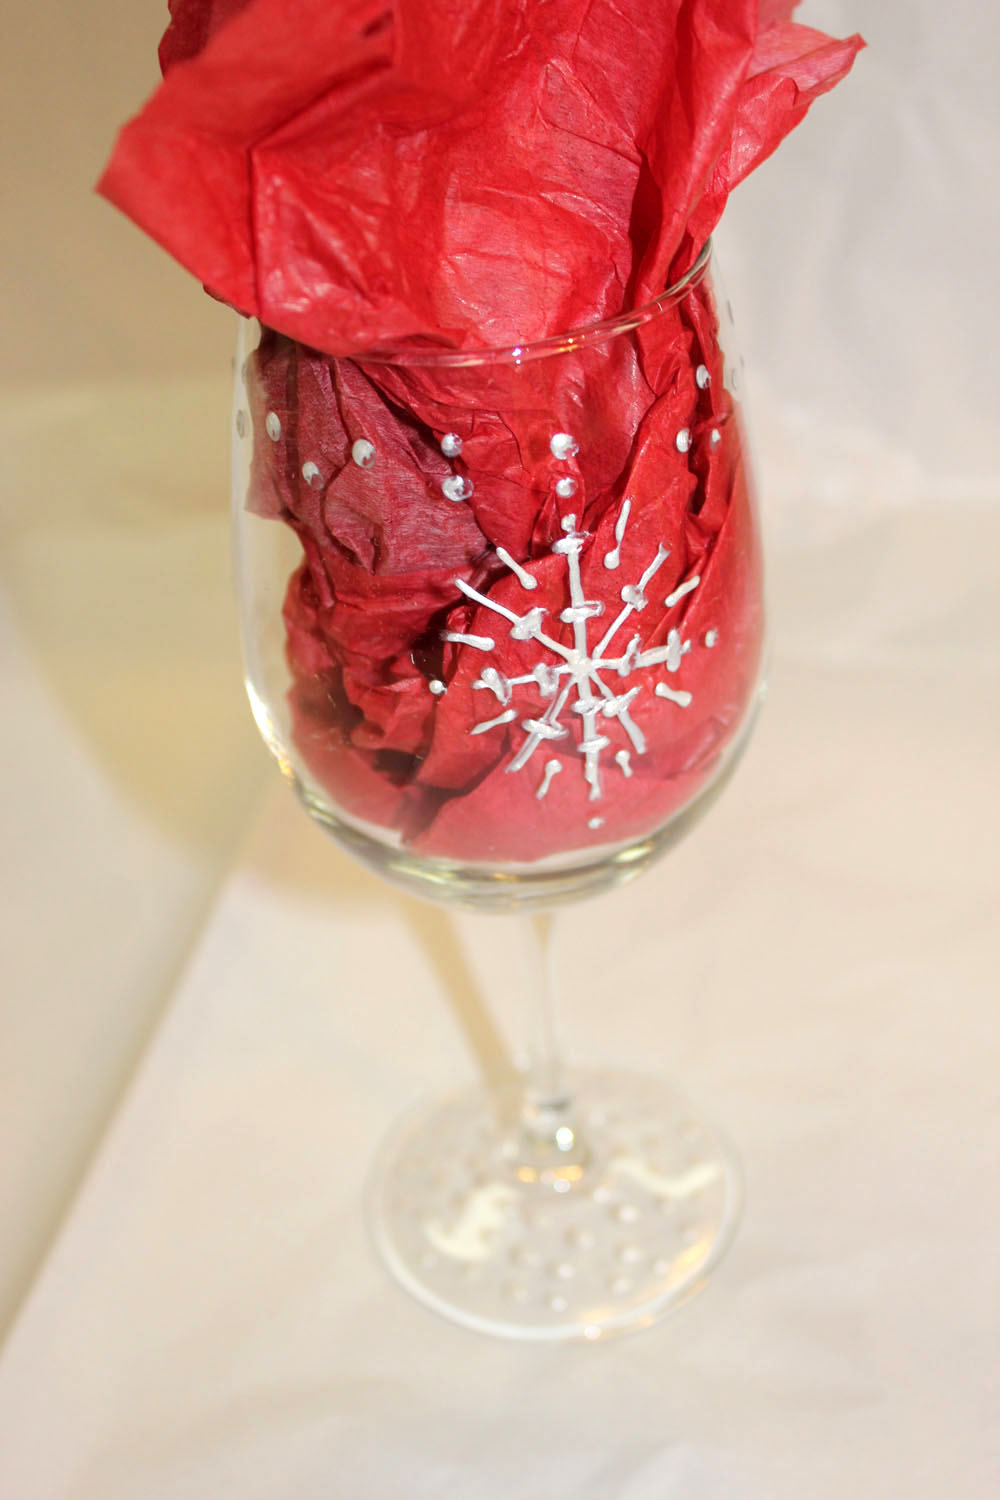 custom-painted-wine-glass-class-art-by-tjm-studio-greensboro-img_4698.jpg